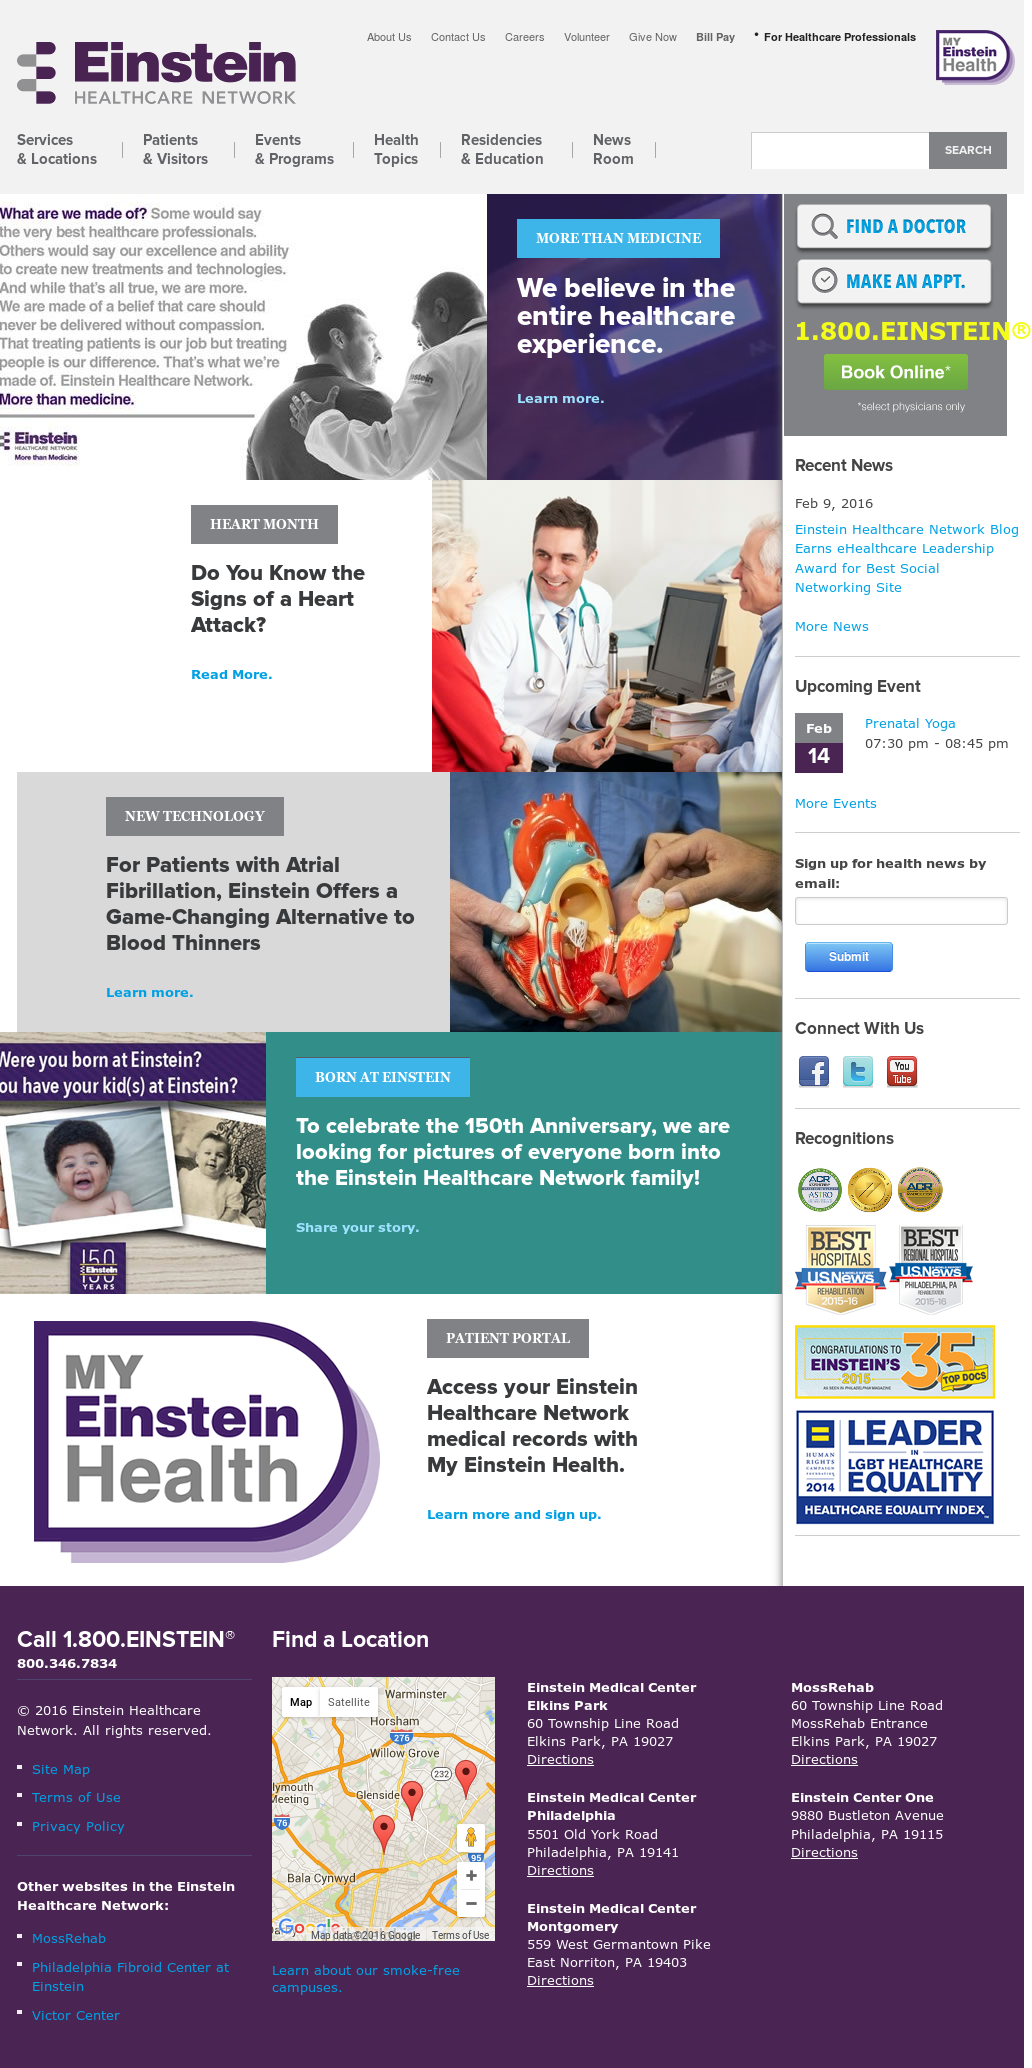 Einstein Healthcare Network Competitors, Revenue and